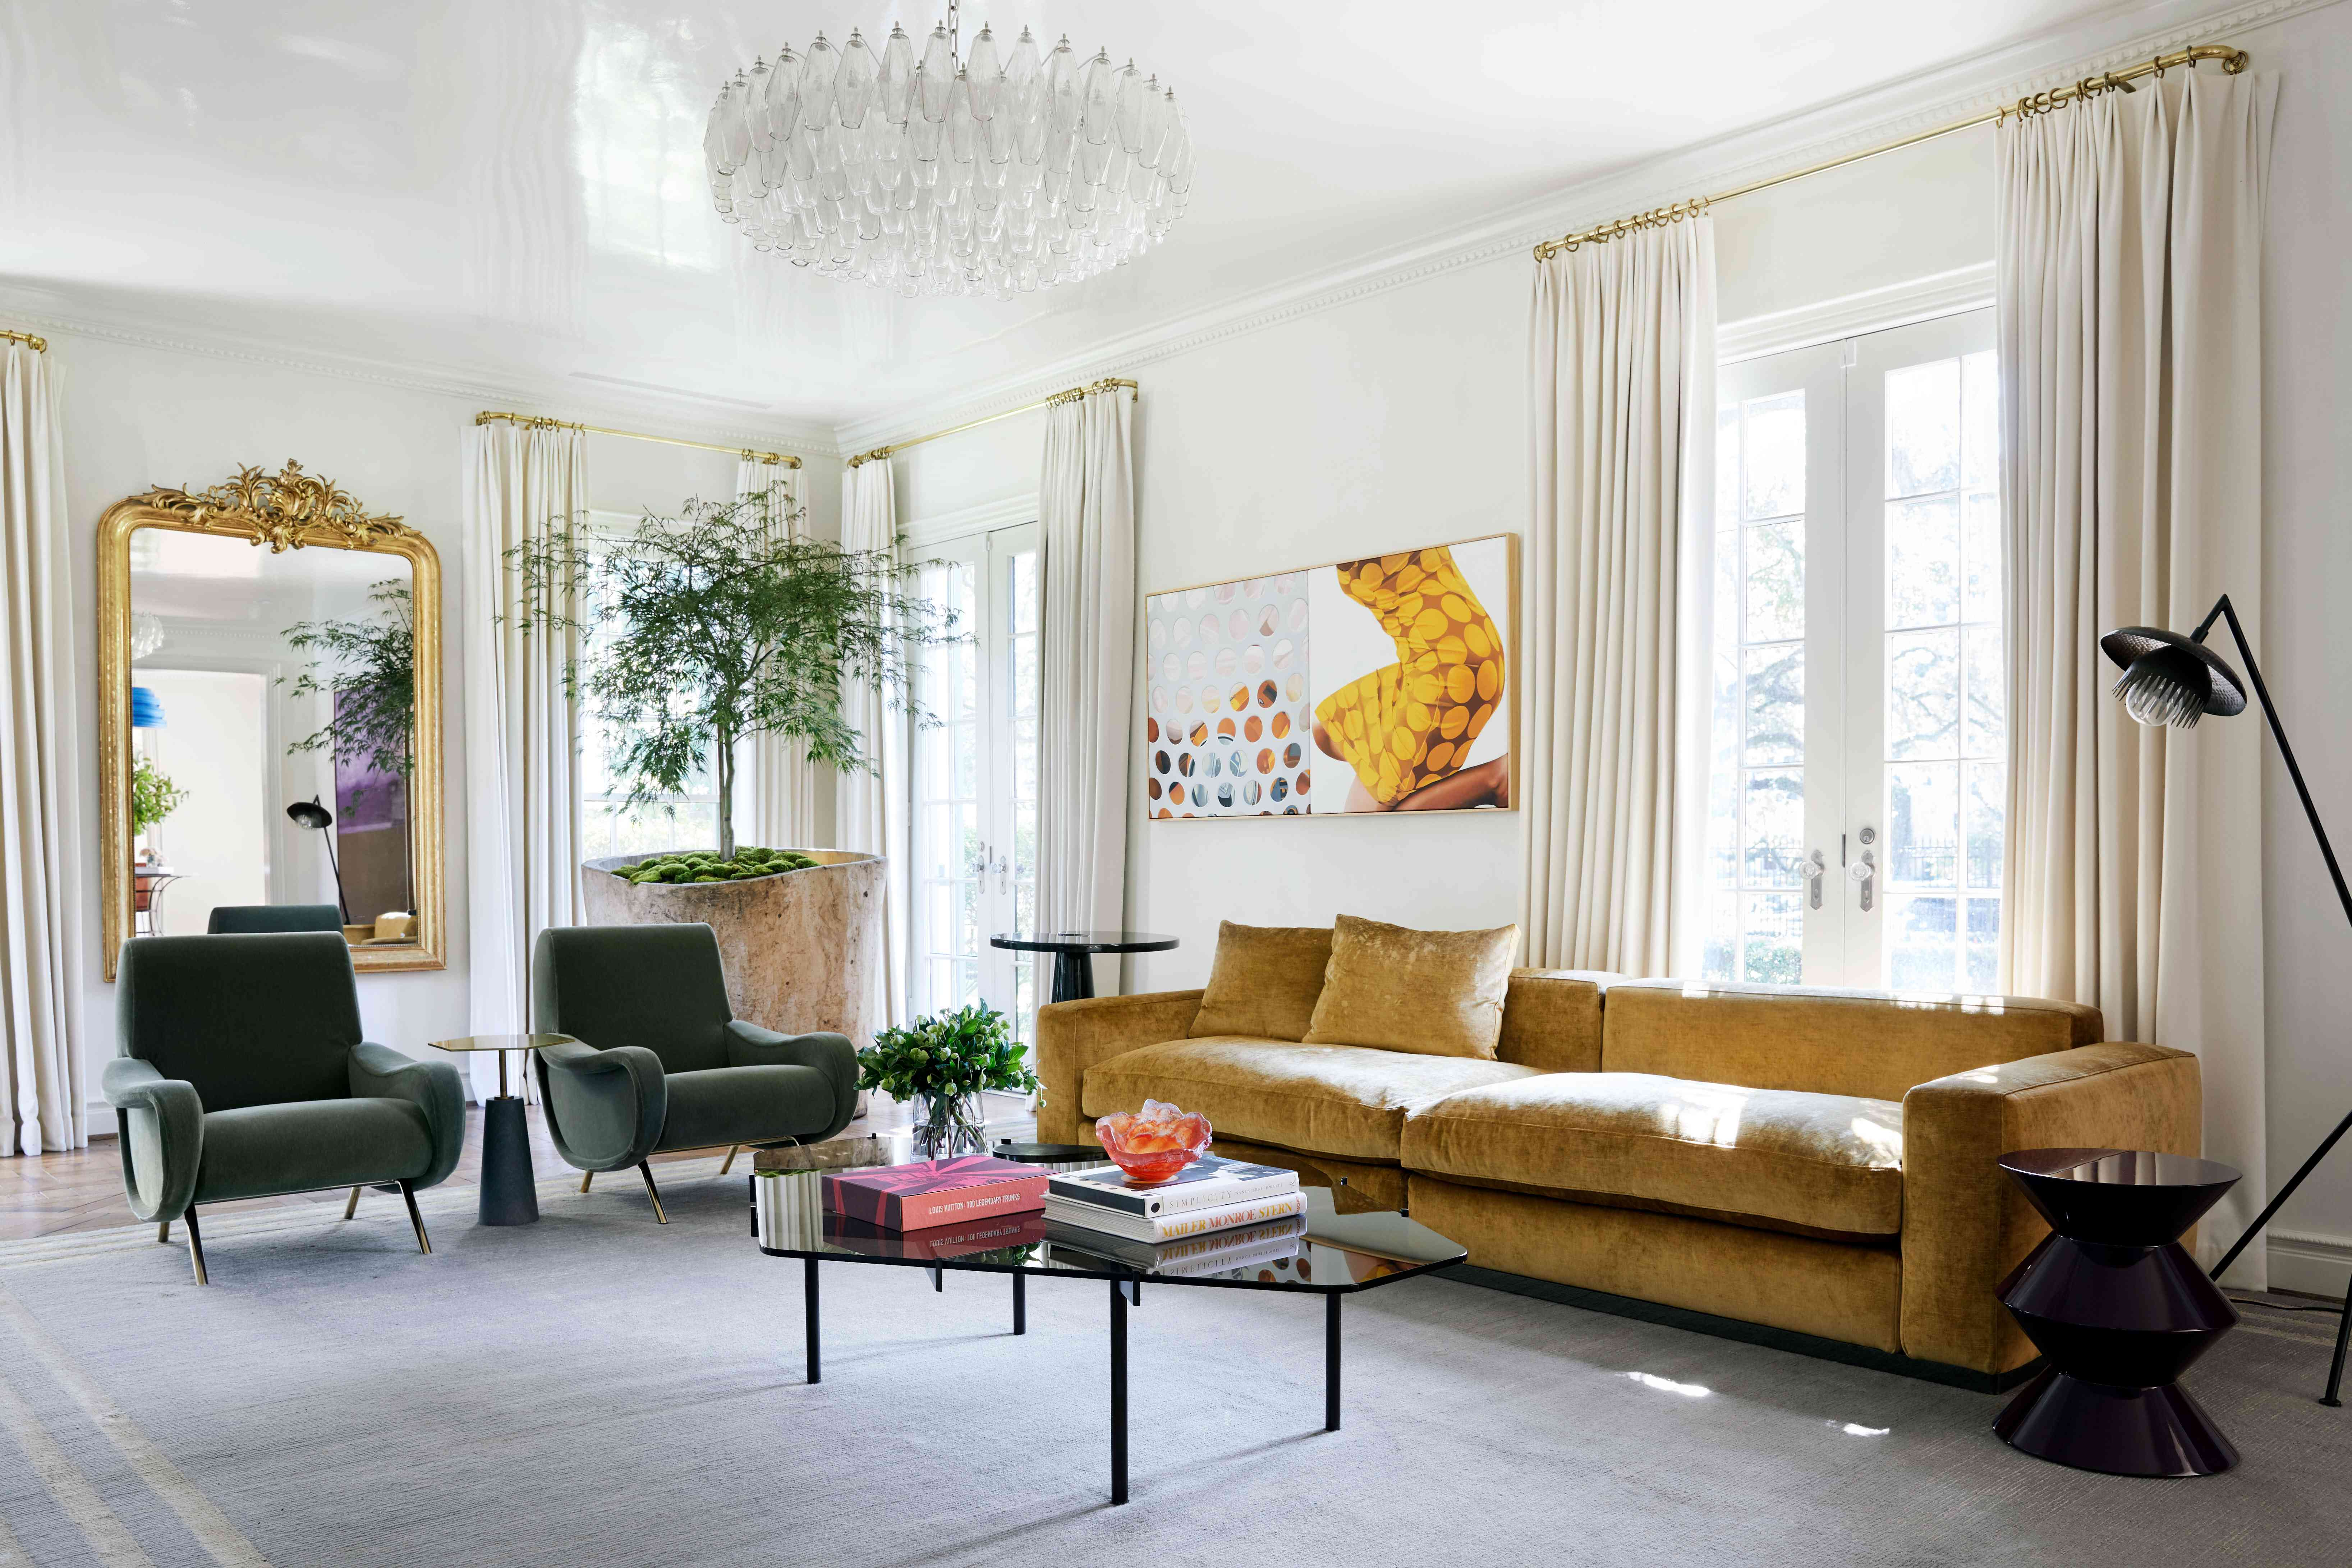 Eclectic living room with yellow velvet sofa.